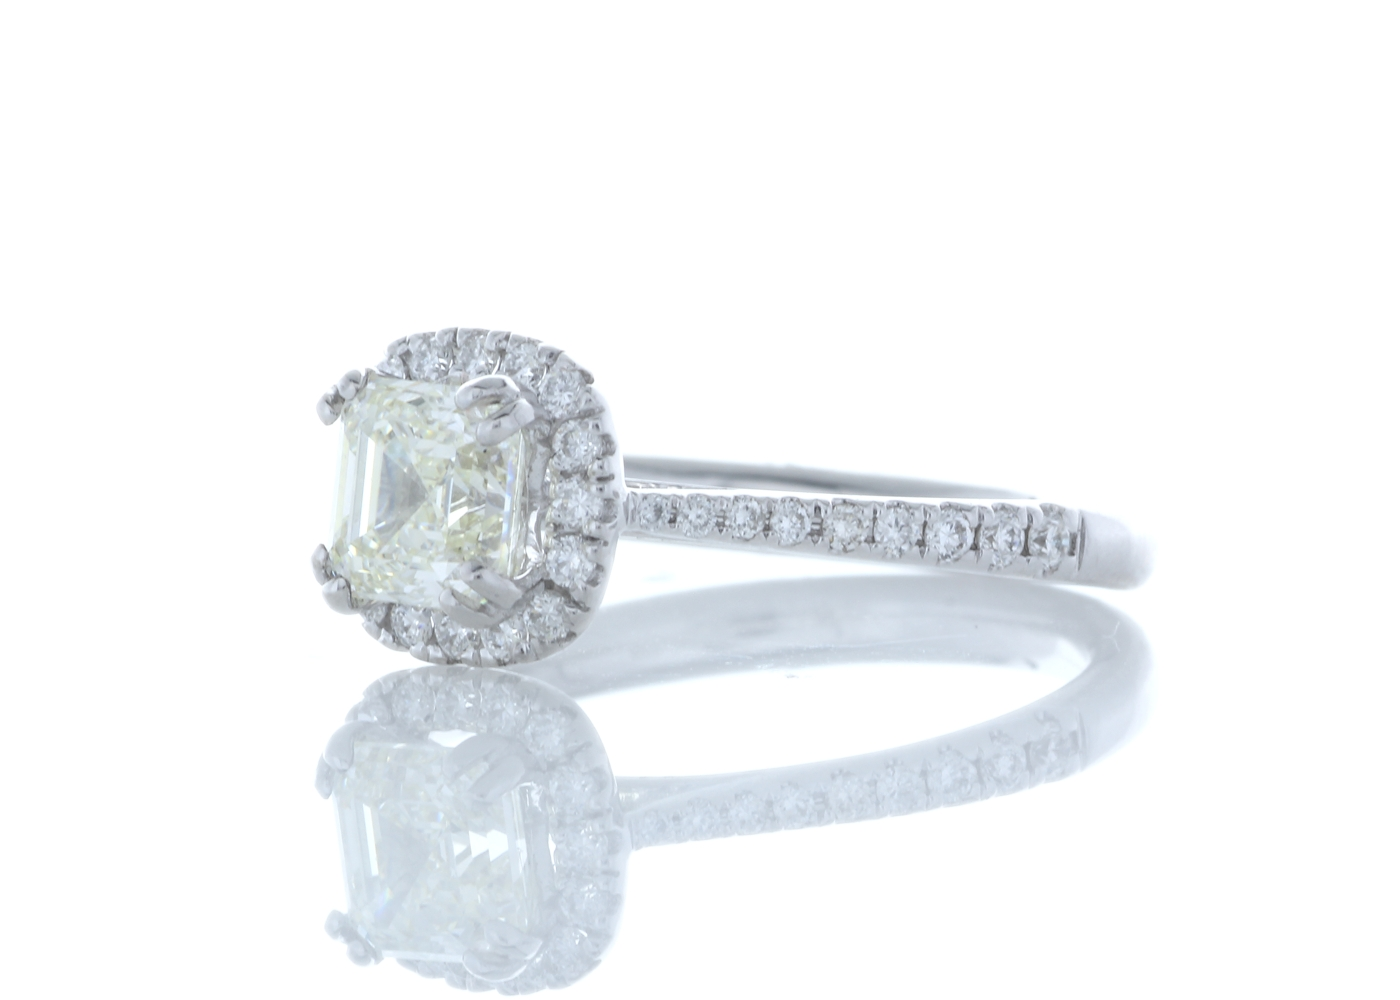 18ct White Gold Single Stone With Halo Setting Ring (1.01) 1.27 Carats - Image 2 of 6